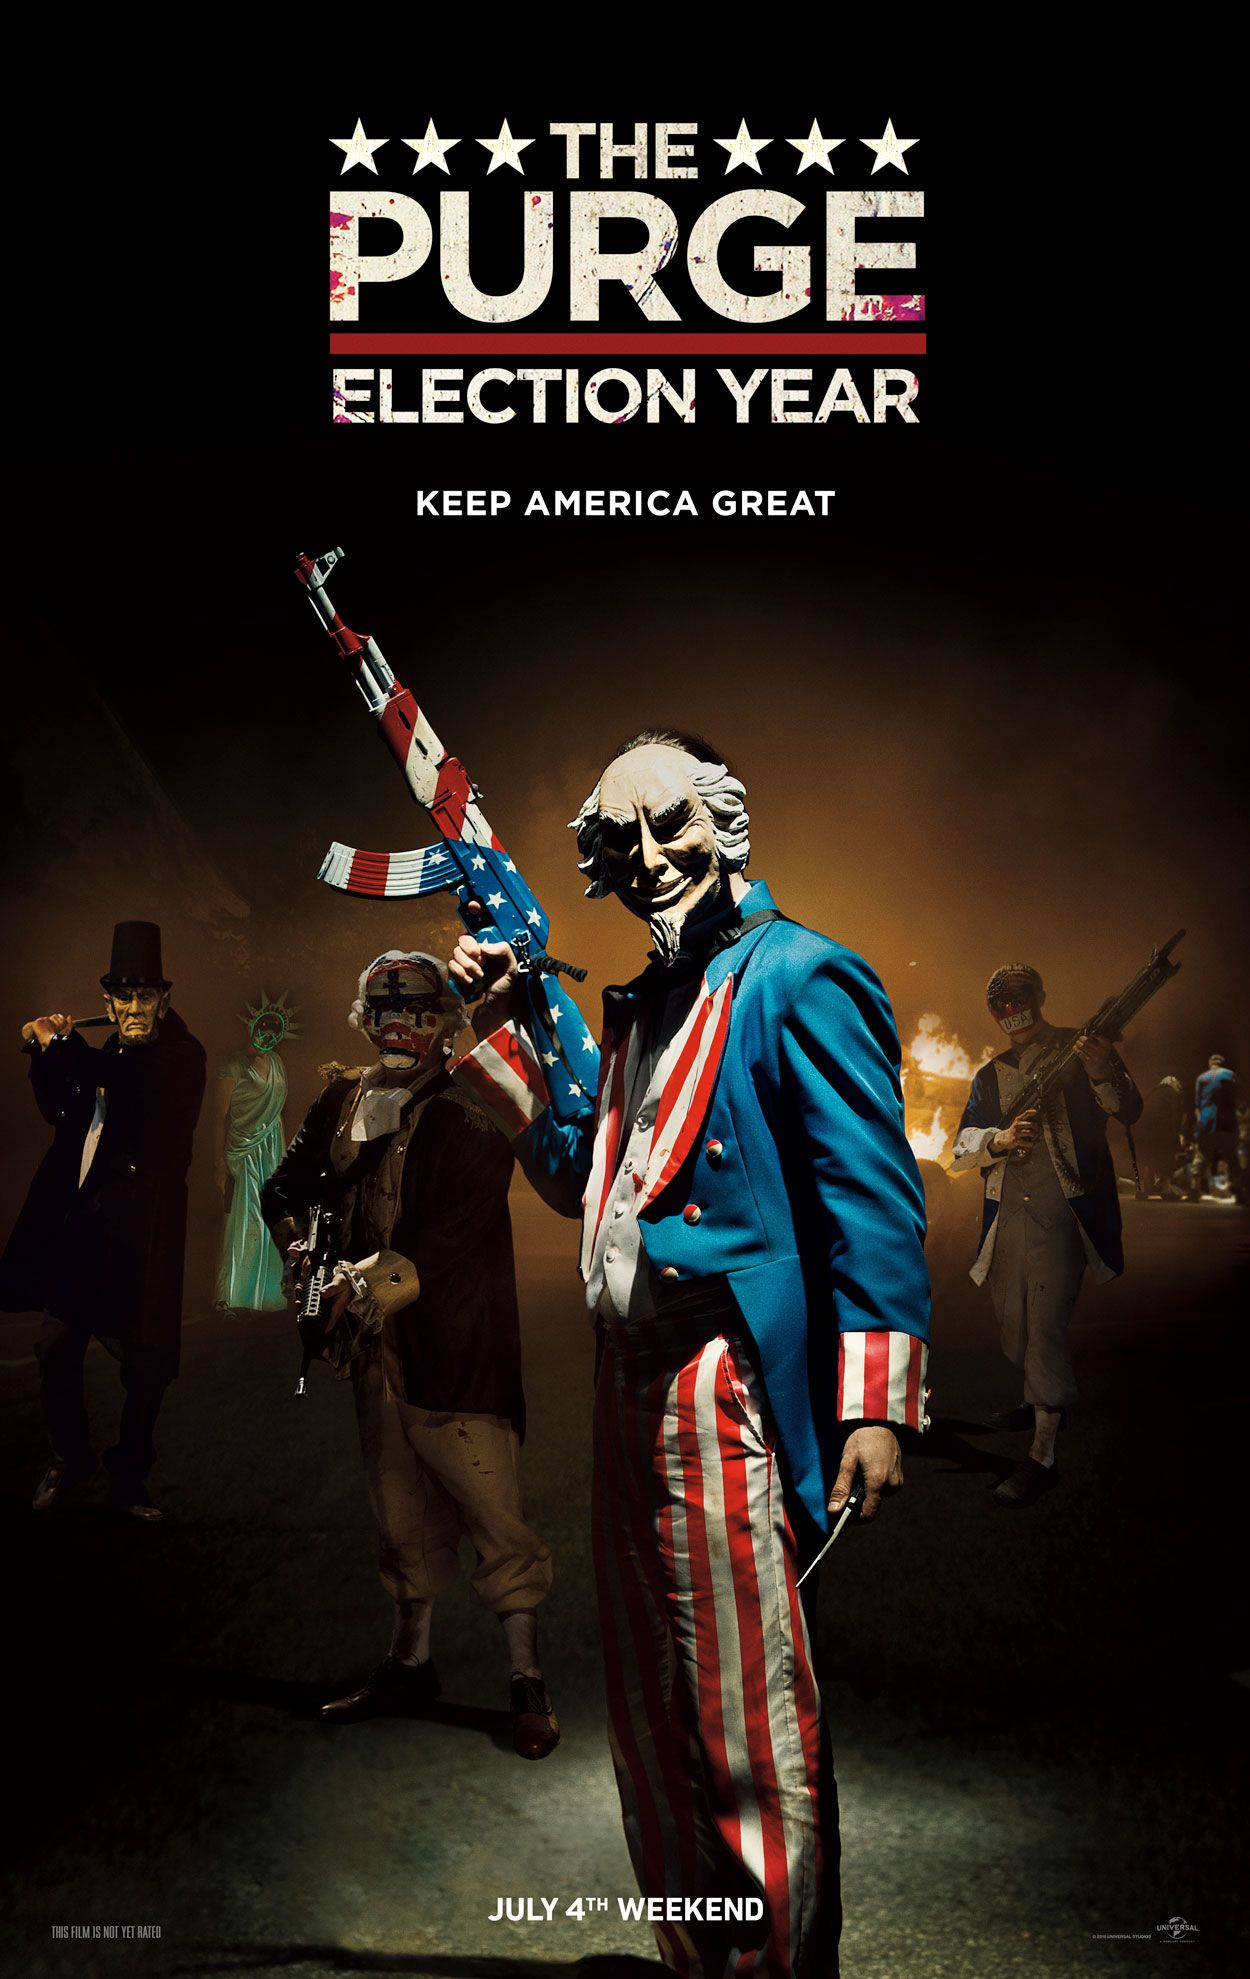 the purge election year in theaters july 1 the purge election